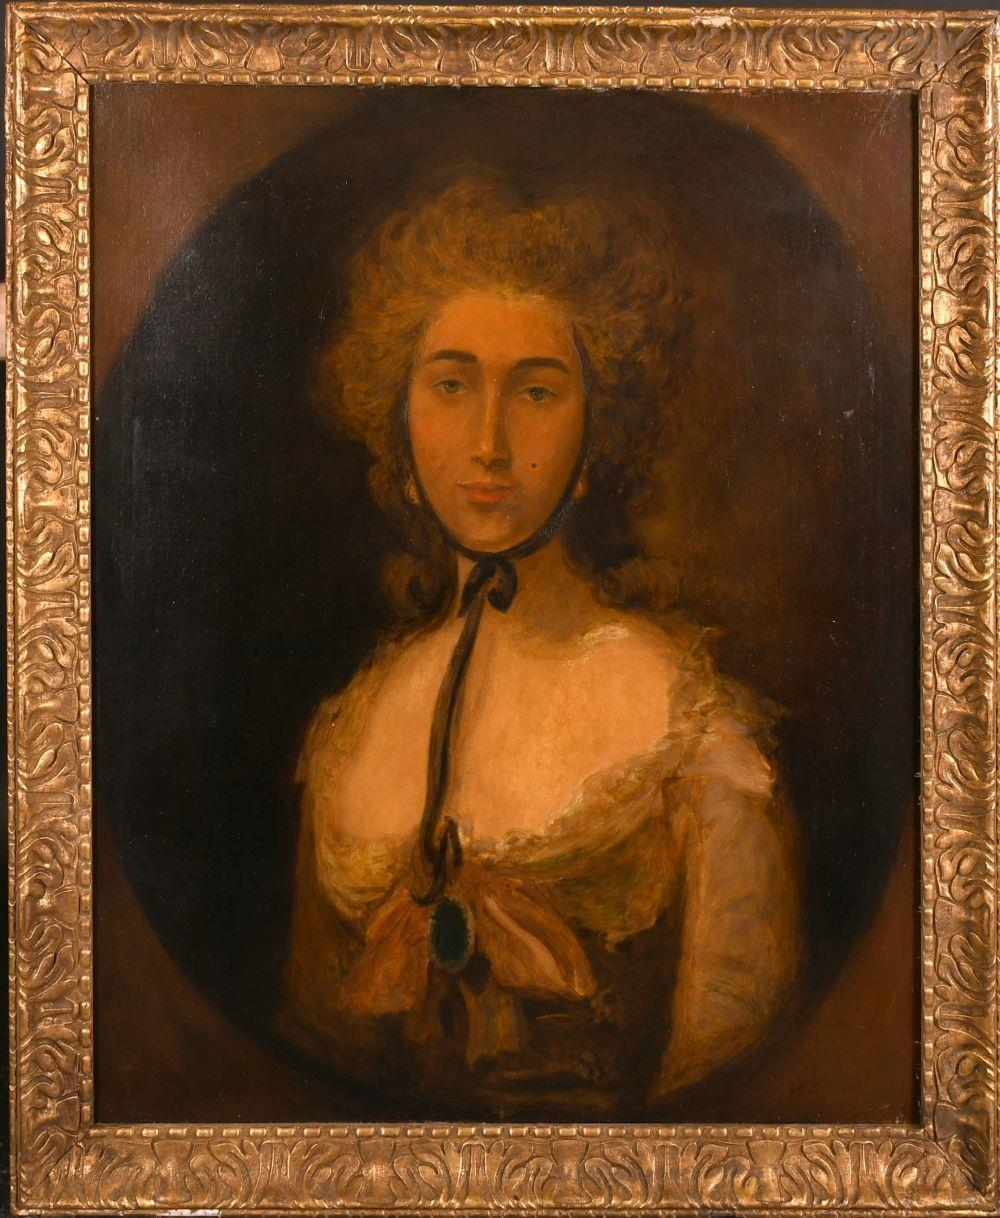 FINE EARLY 1800'S PORTRAIT OF A LADY - AFTER GAINSBOROUGH - LARGE OIL PAINTING